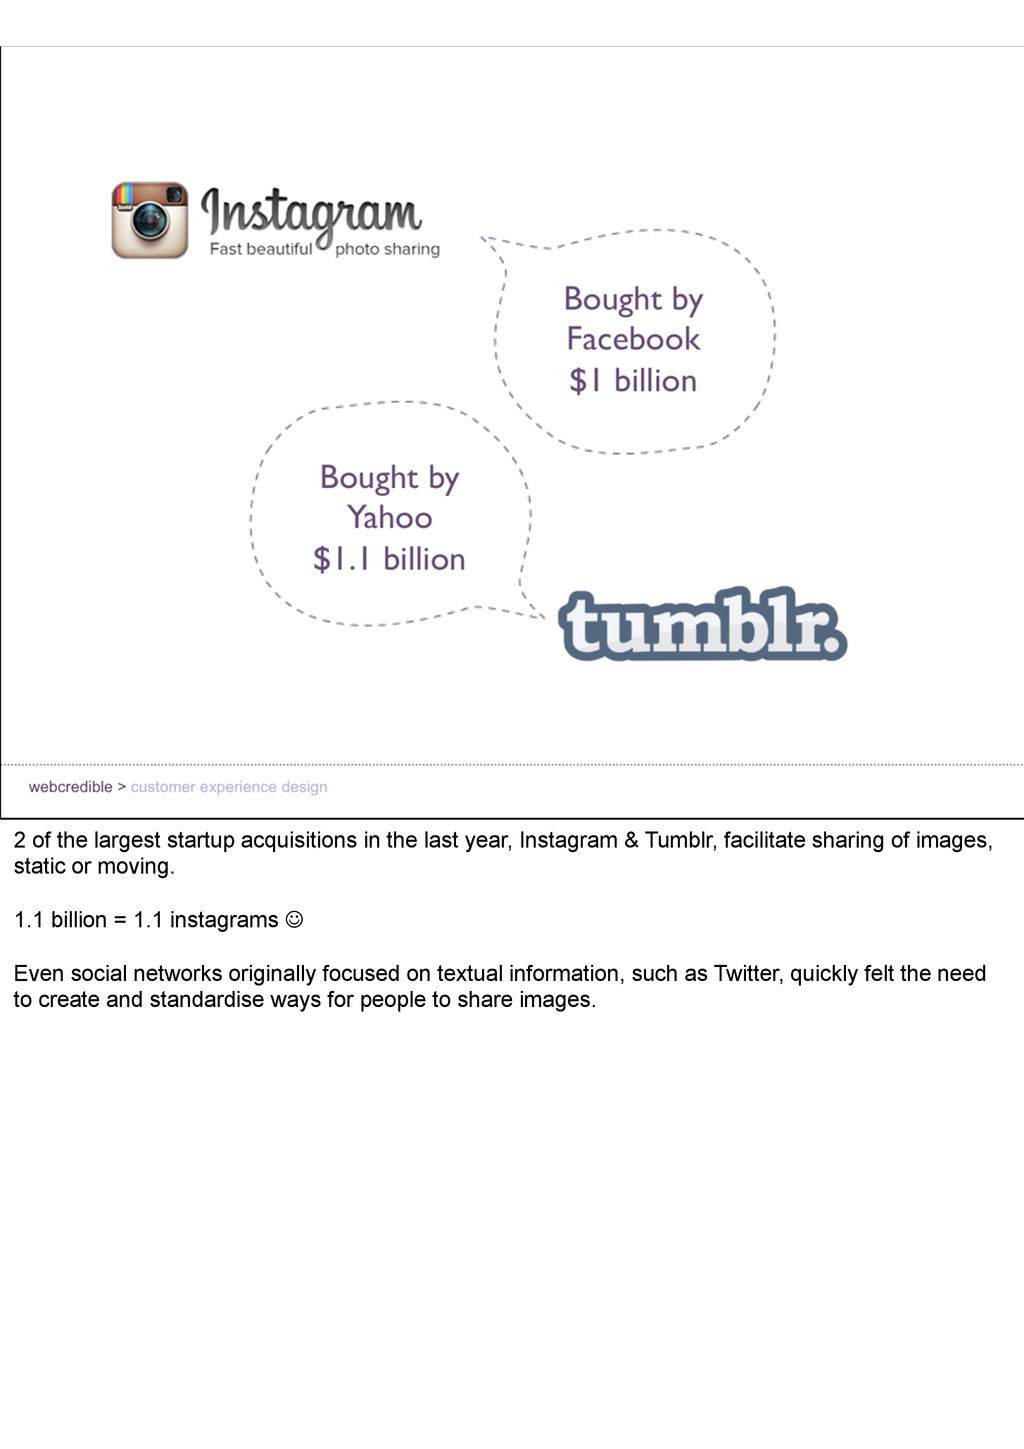 2 of the largest startup acquisitions in the la...